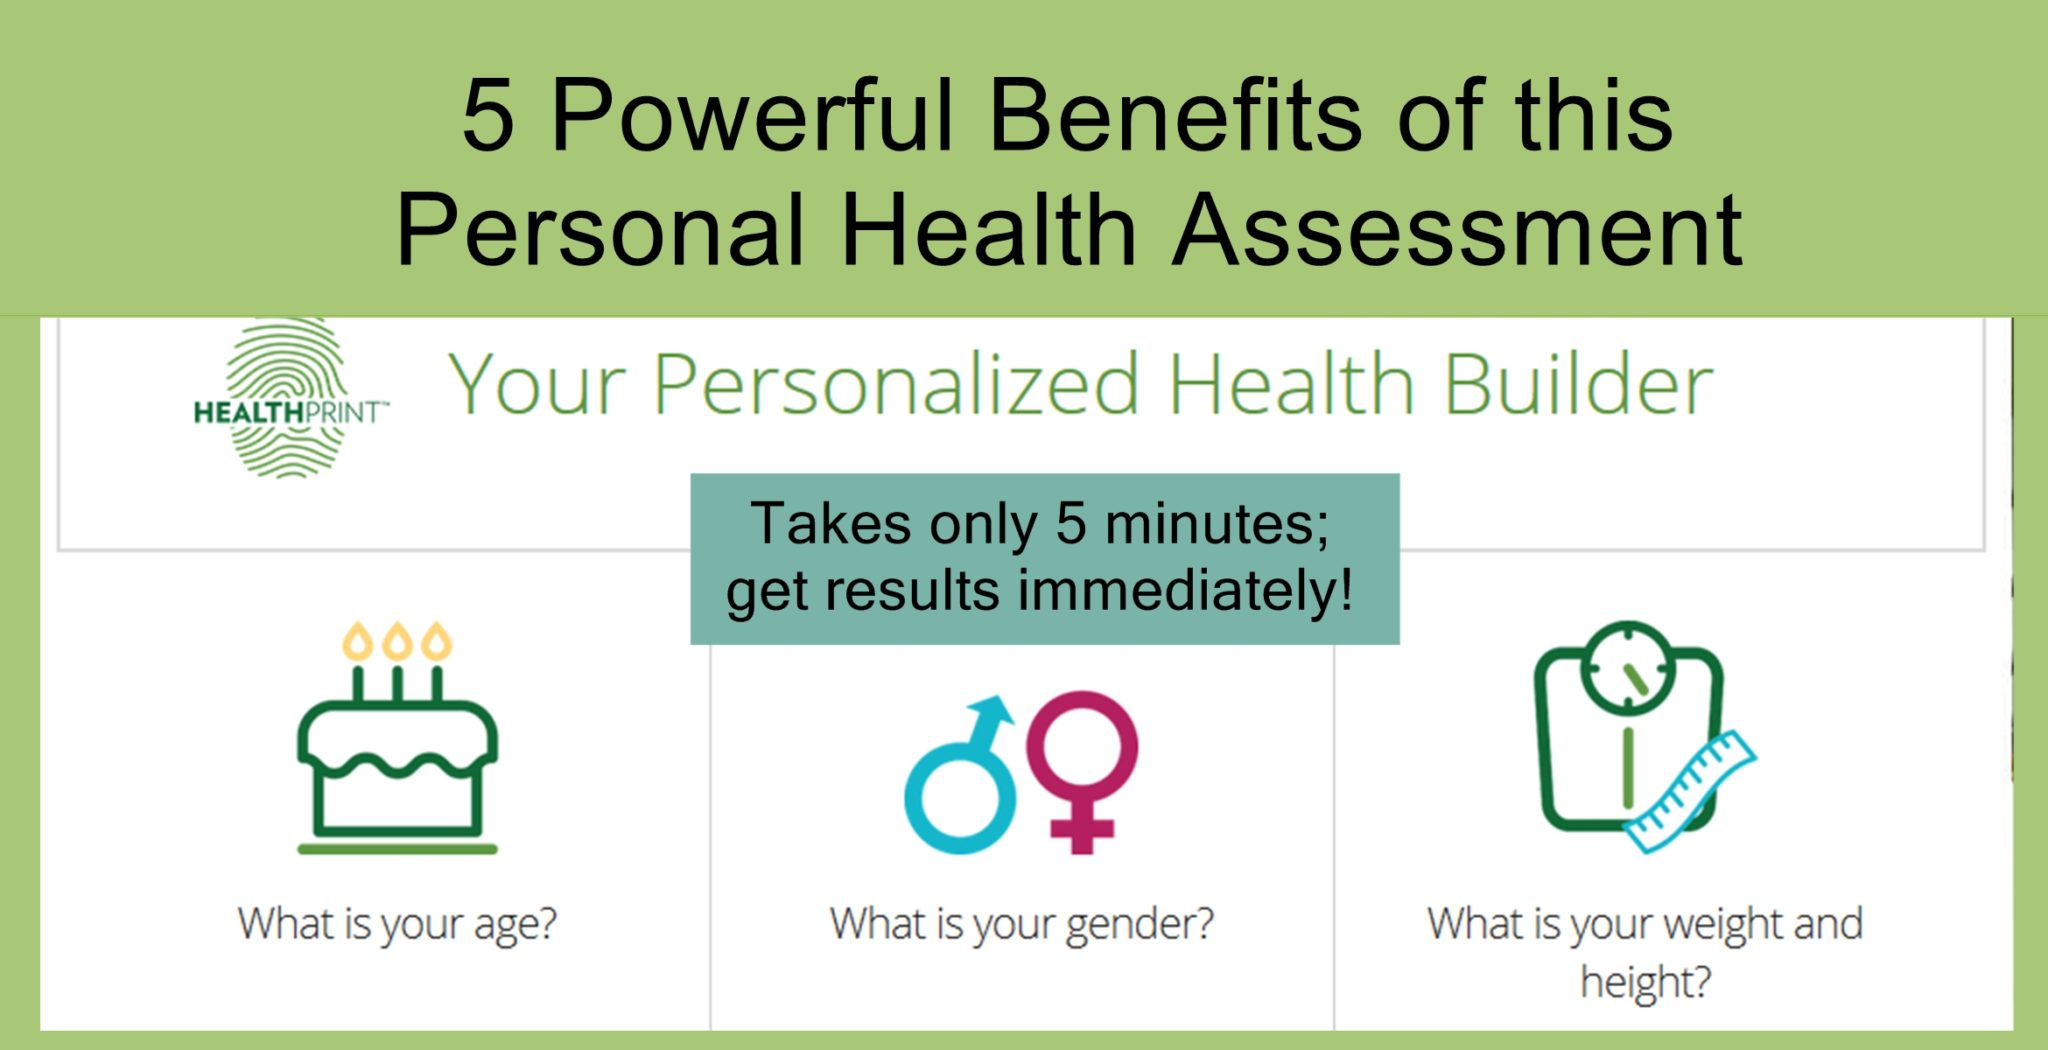 5 powerful benefits of health assessment